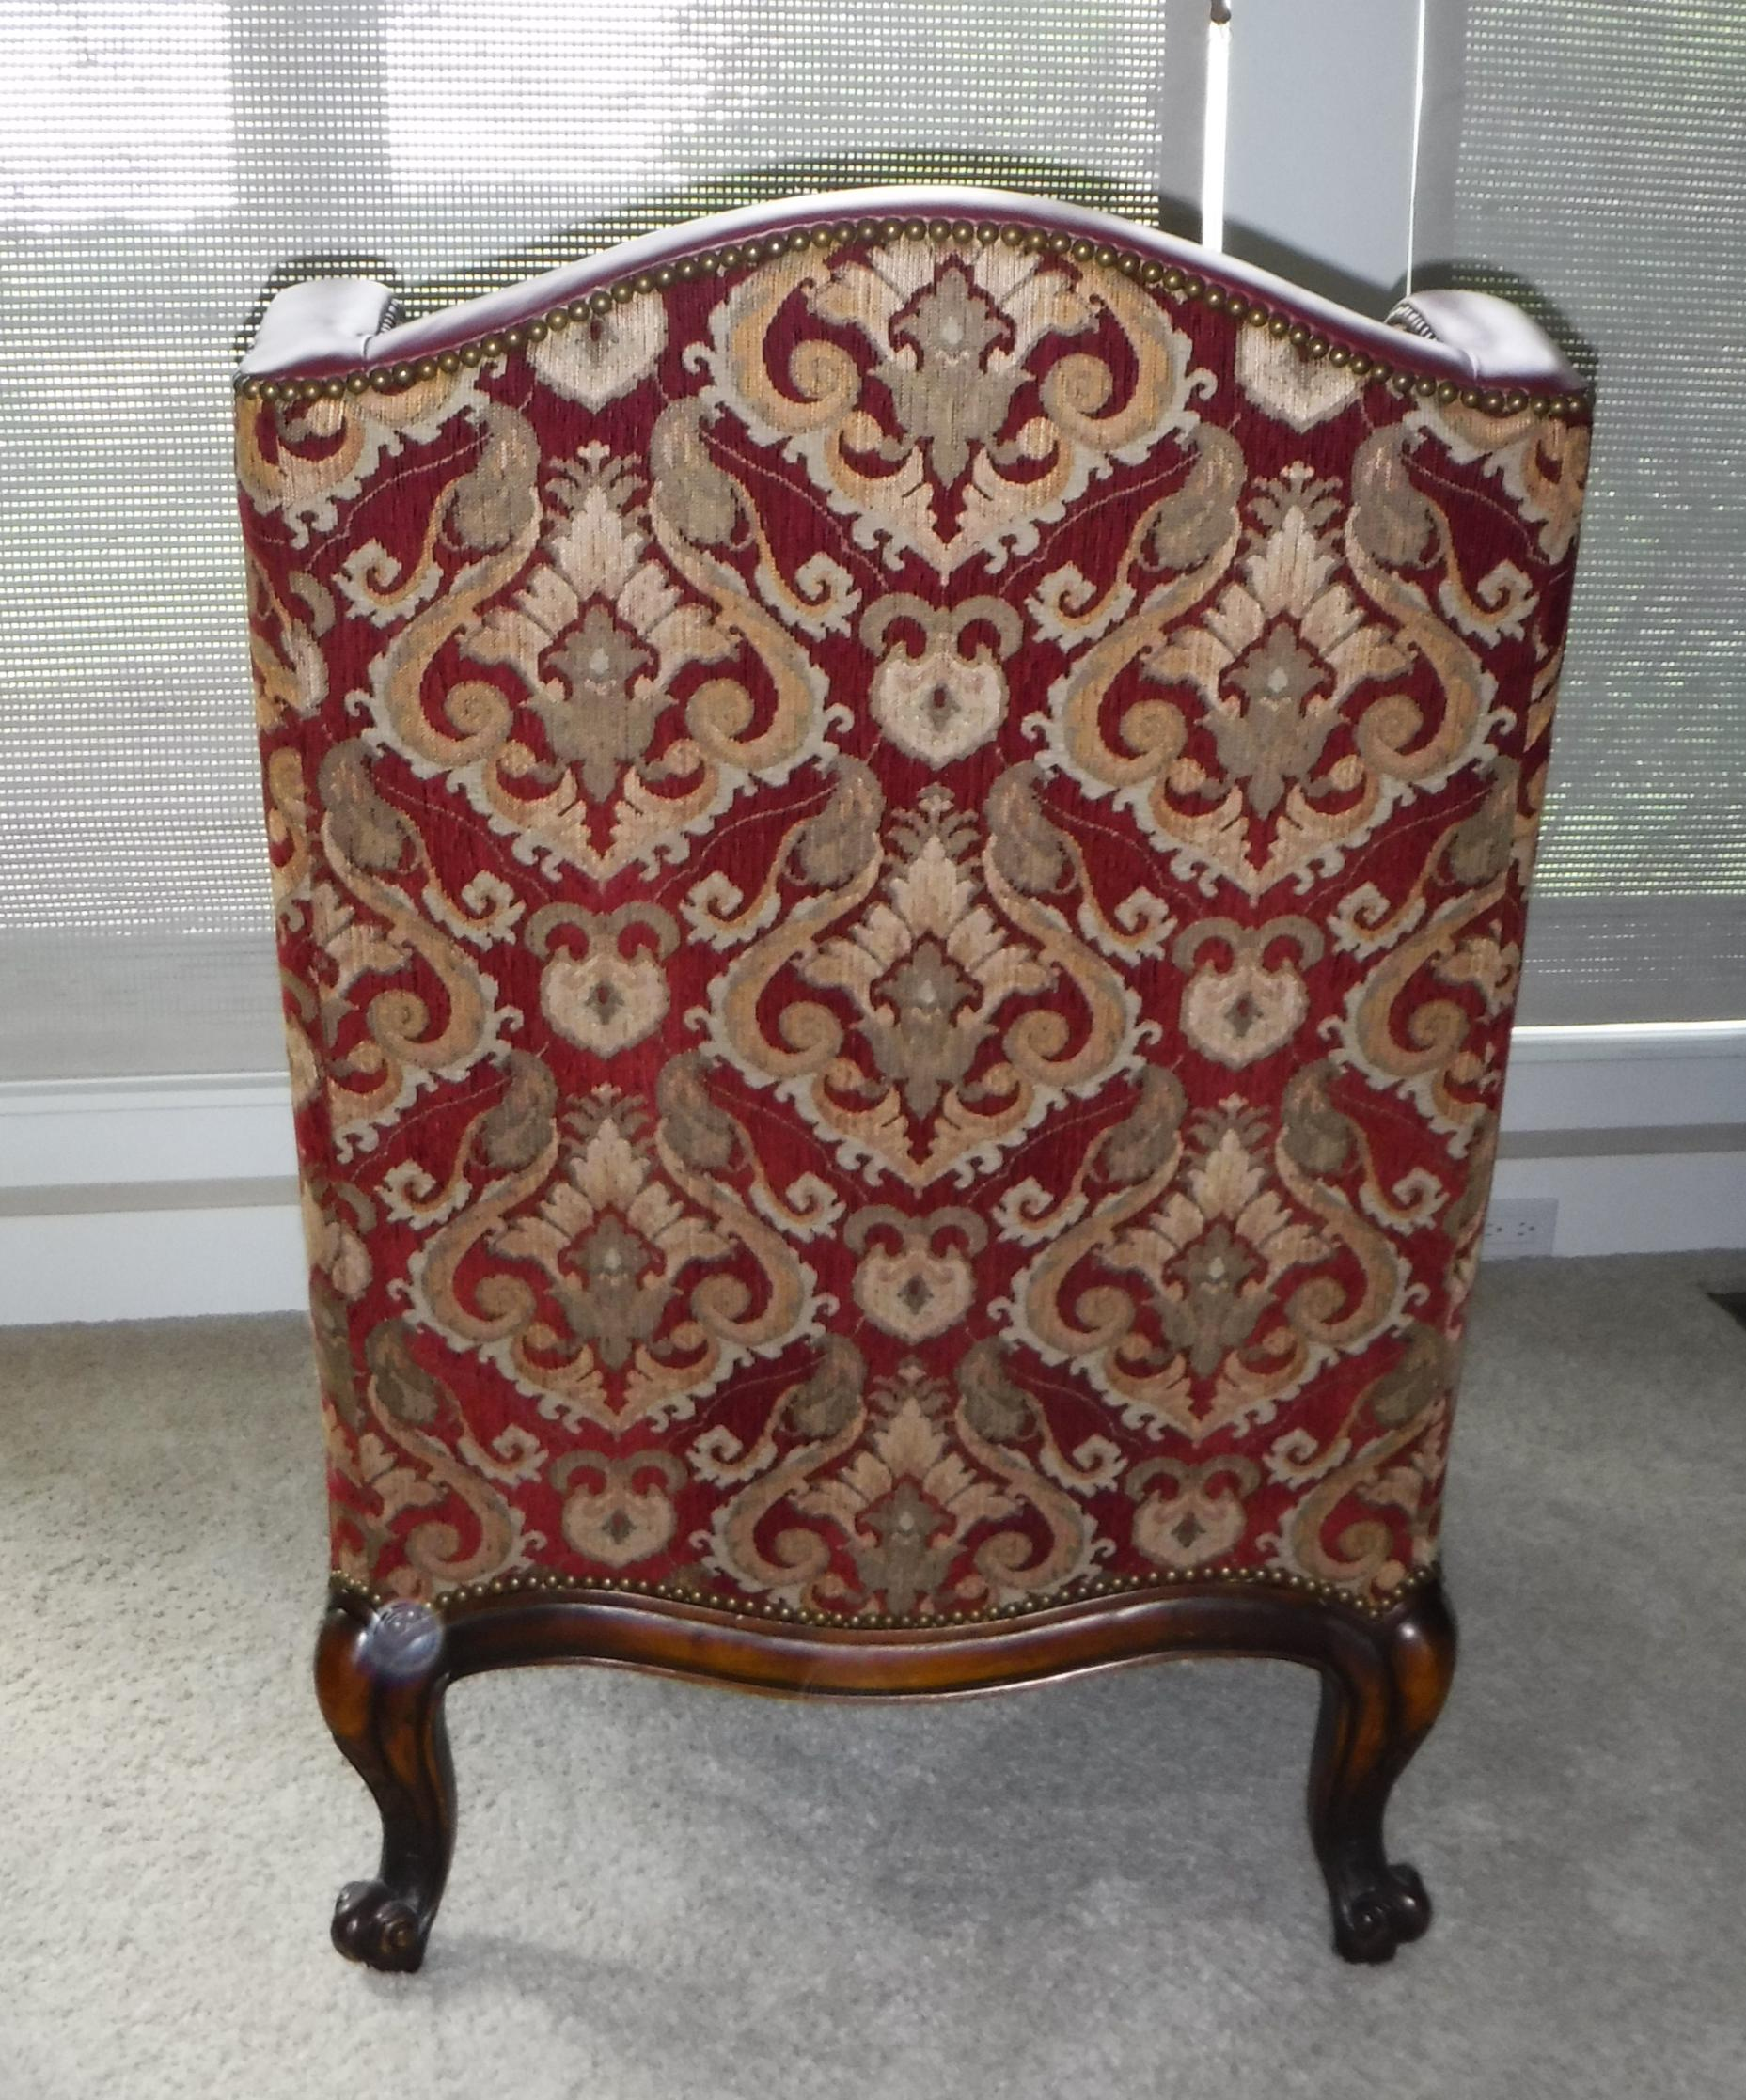 2010s Leather And Fabric Burgundy And Gold Sherrill Windsor Chair For Sale    Image 5 Of